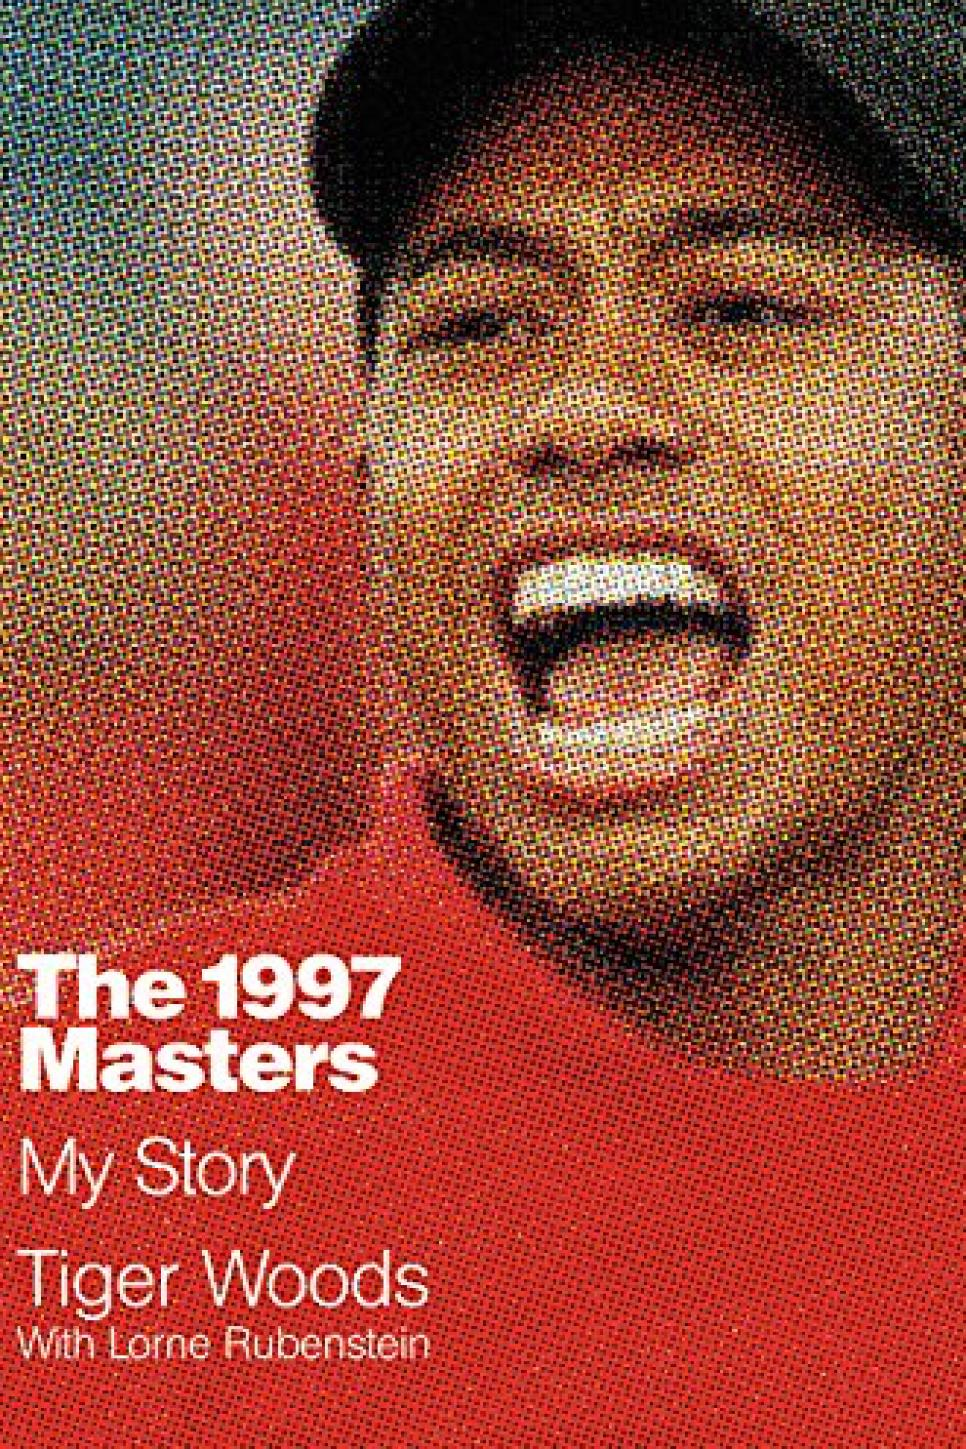 Tiger-Woods-book-cover.jpg